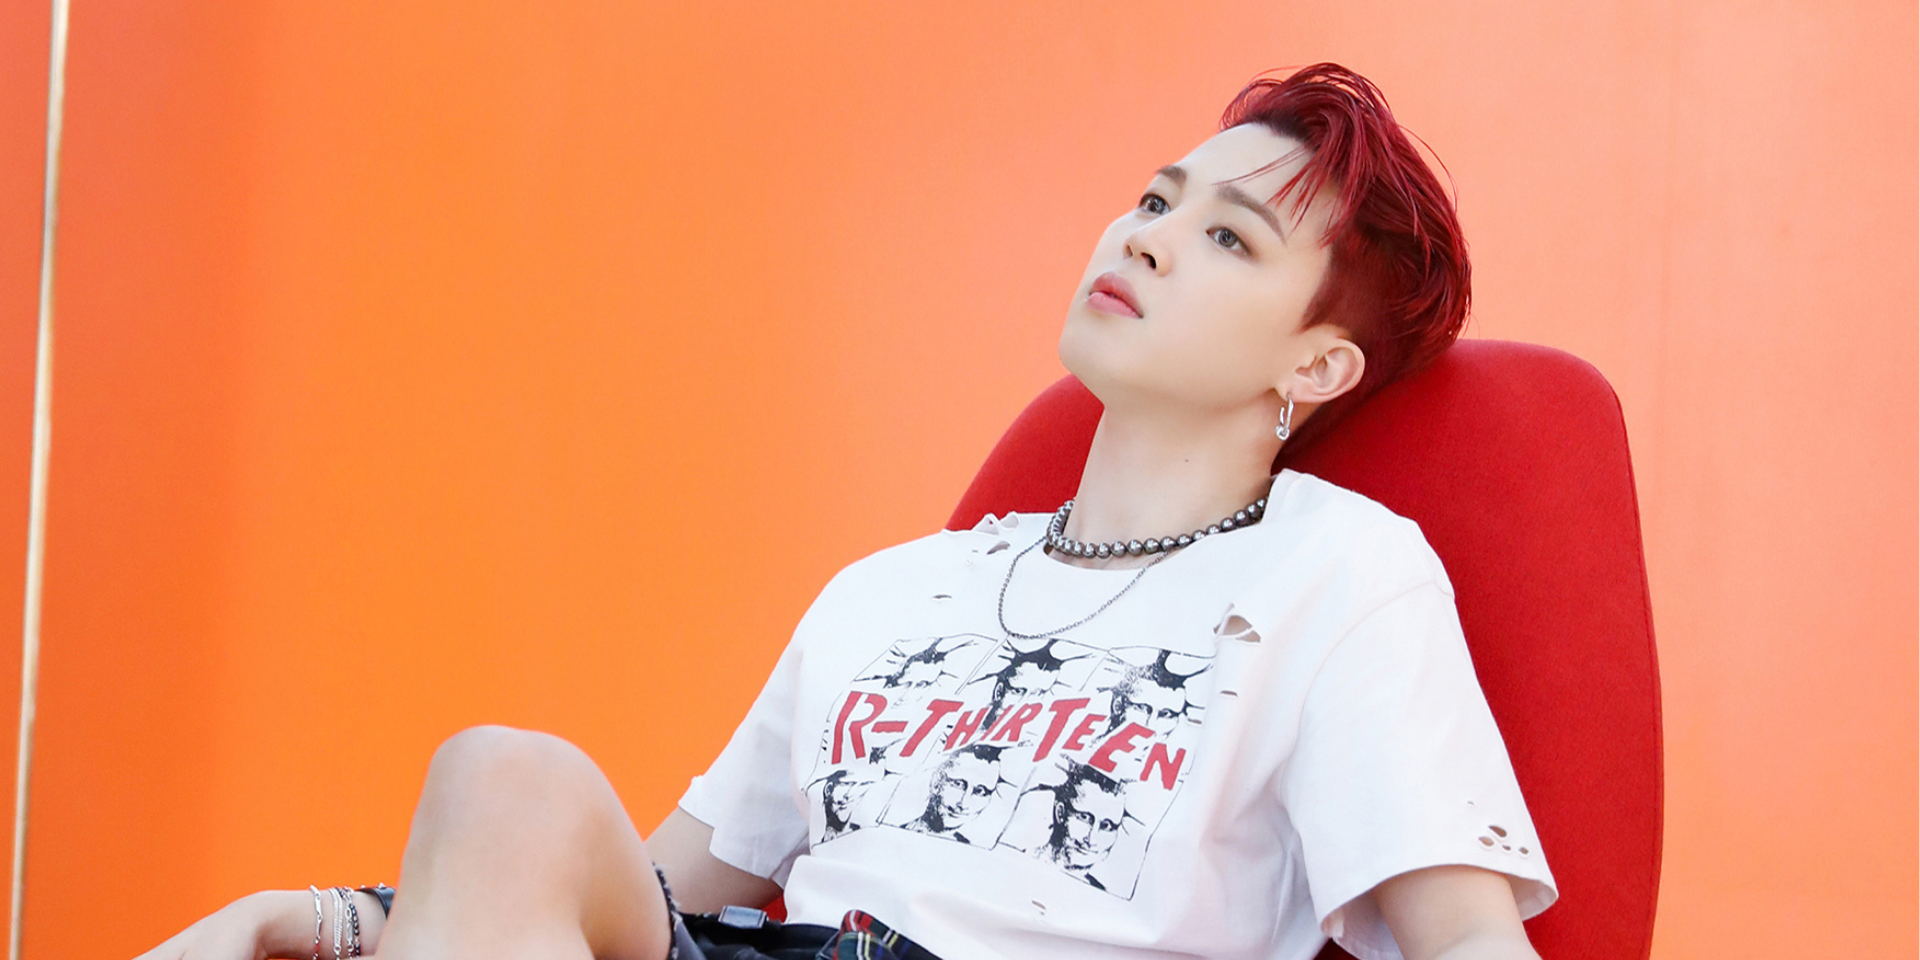 BTS' Jimin donates 100 million won to polio patients in need